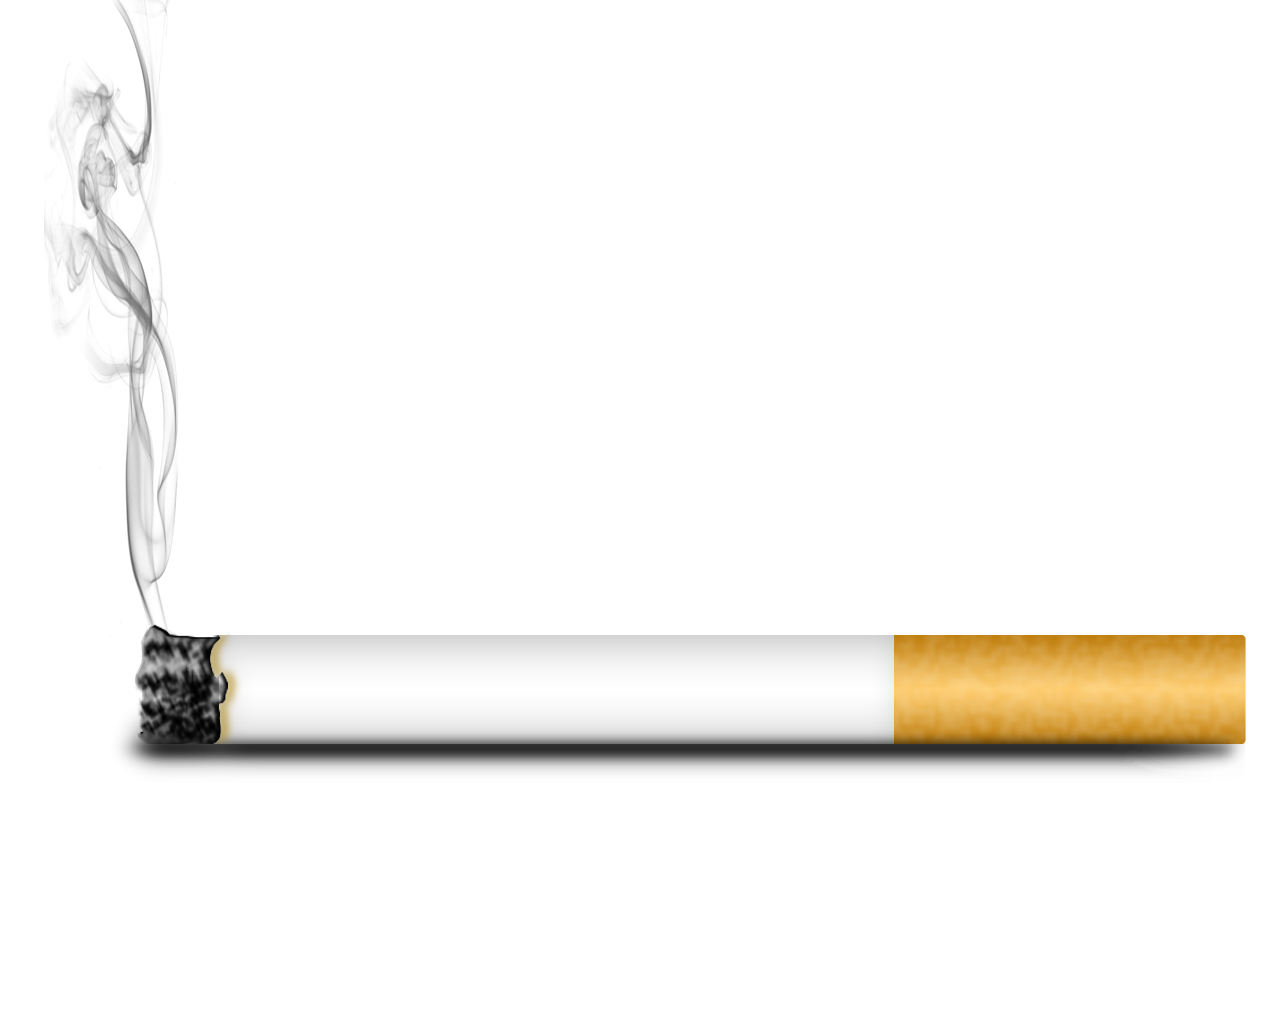 collection of cigarette. Cigar clipart transparent background